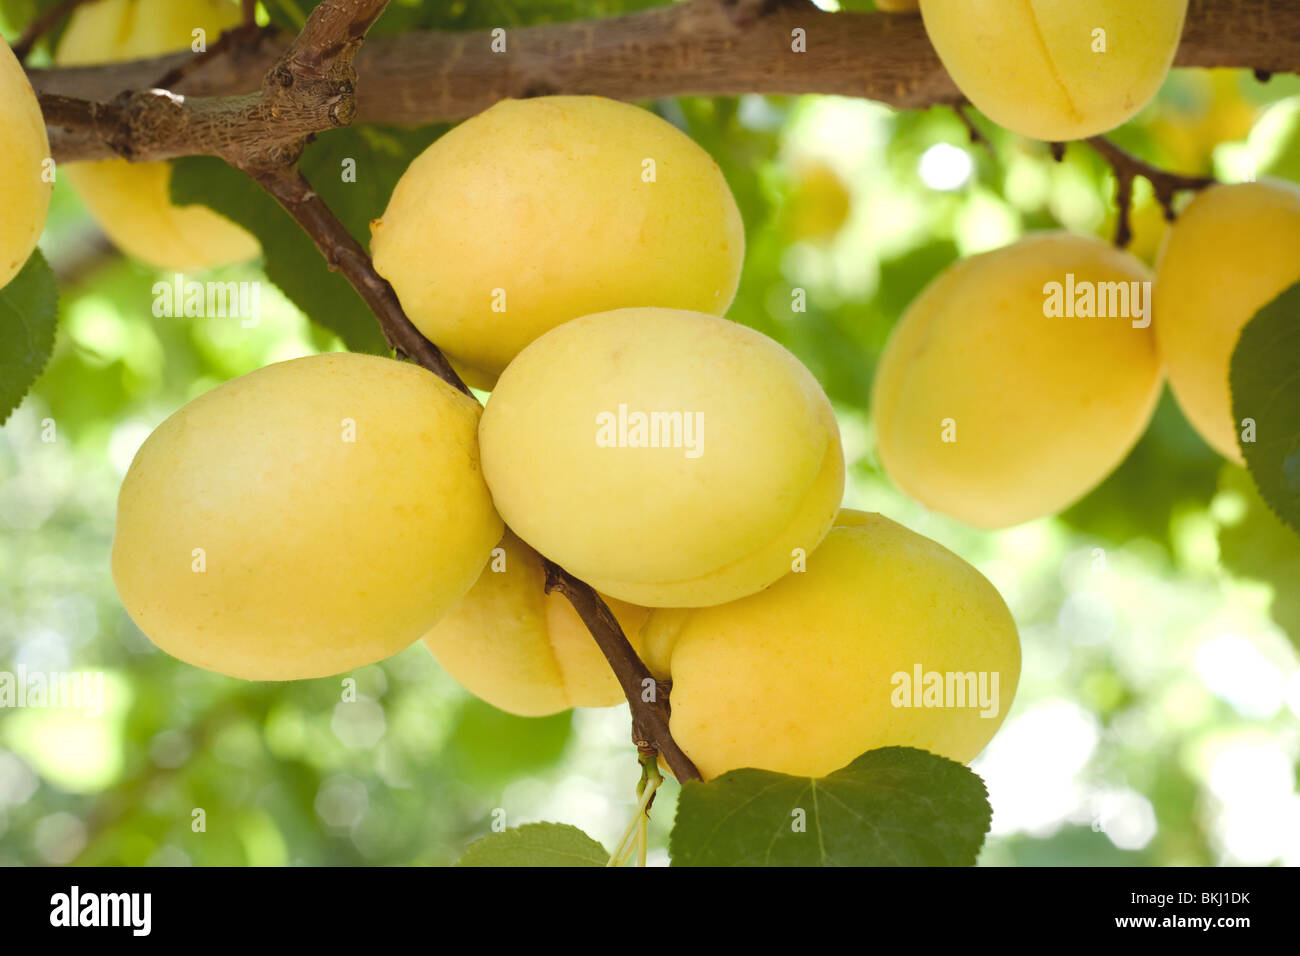 The best and sweetest  apricots which grow only in Armenia. - Stock Image